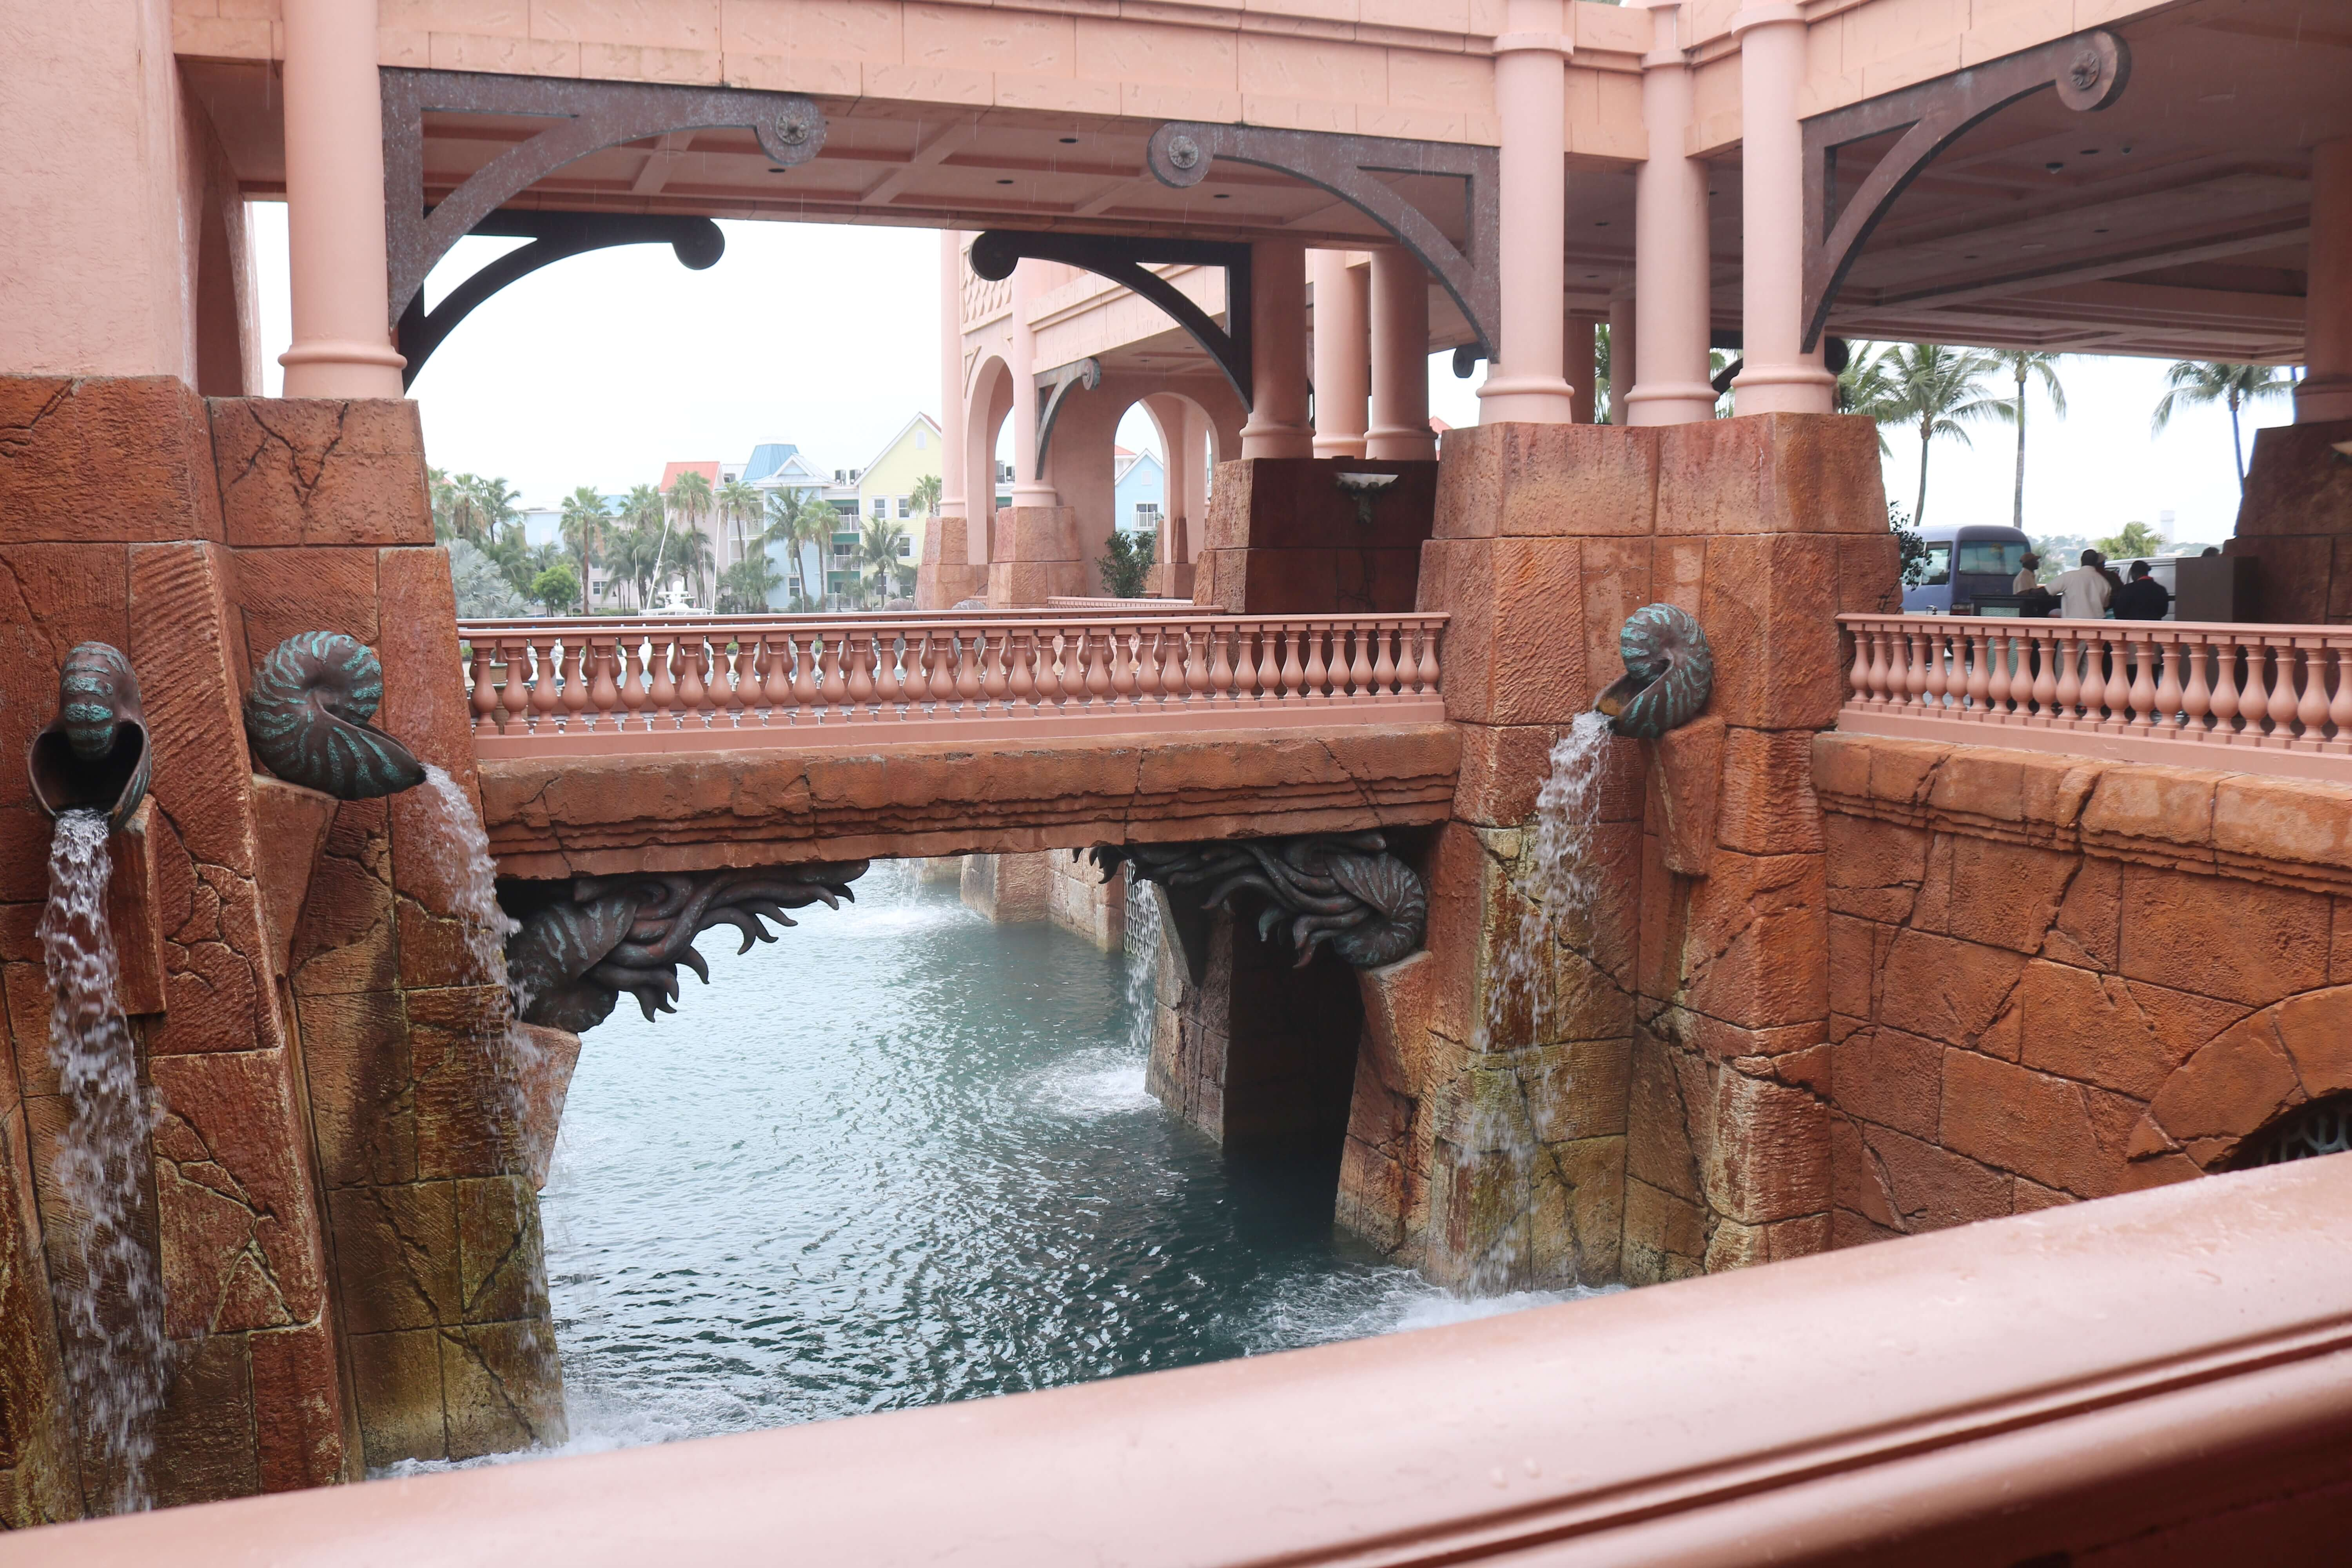 Atlantis Resort Review; My guide to Atlantis resort; Atlantis Resort Paradise Island Bahamas Review sparkelshinylove